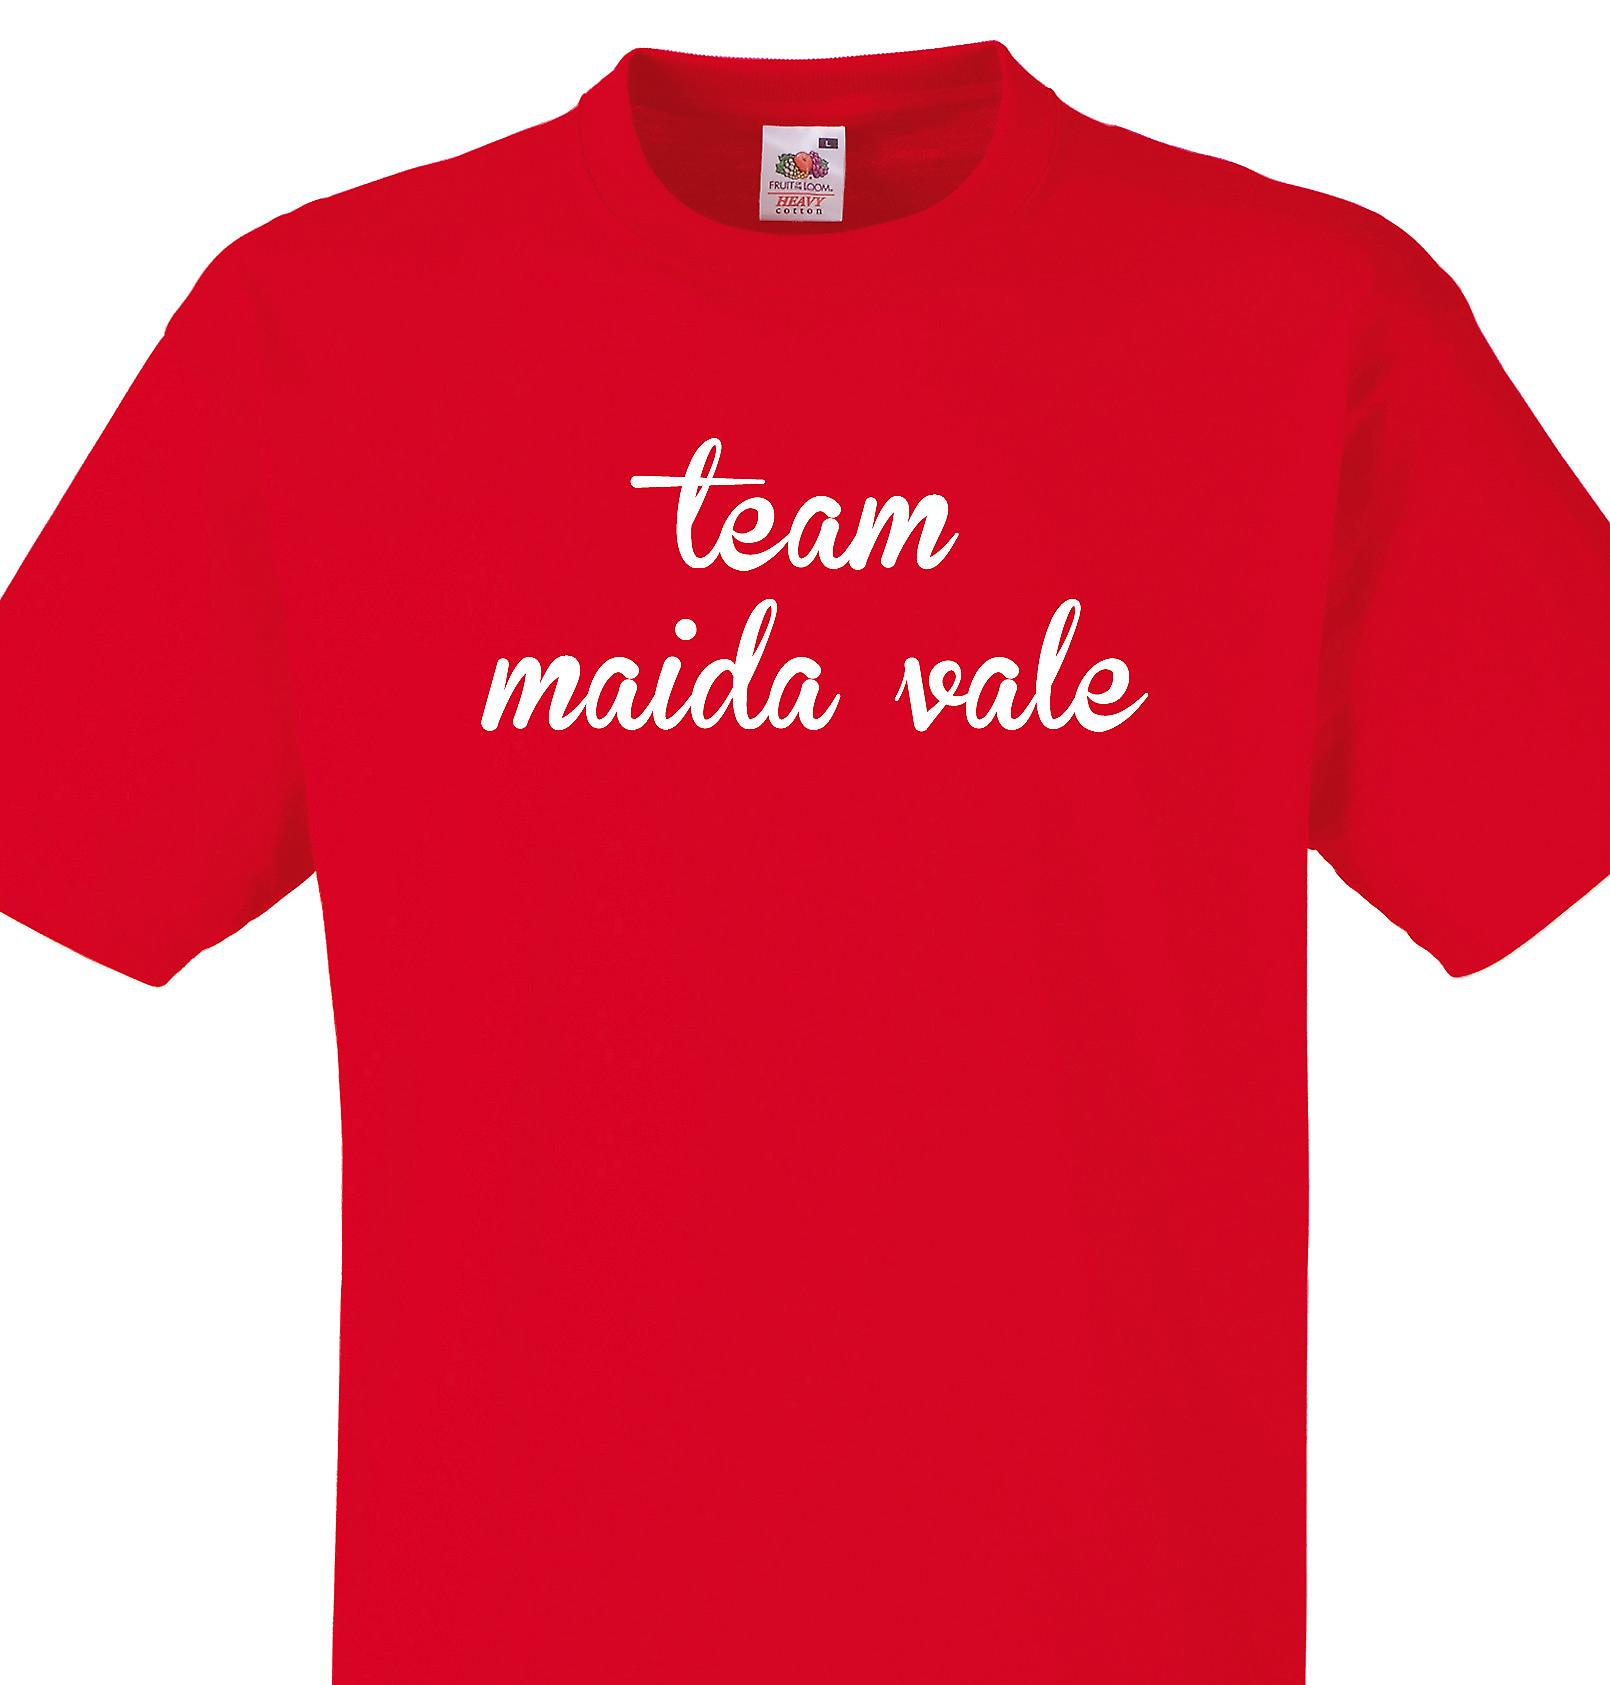 Team Maida vale Red T shirt